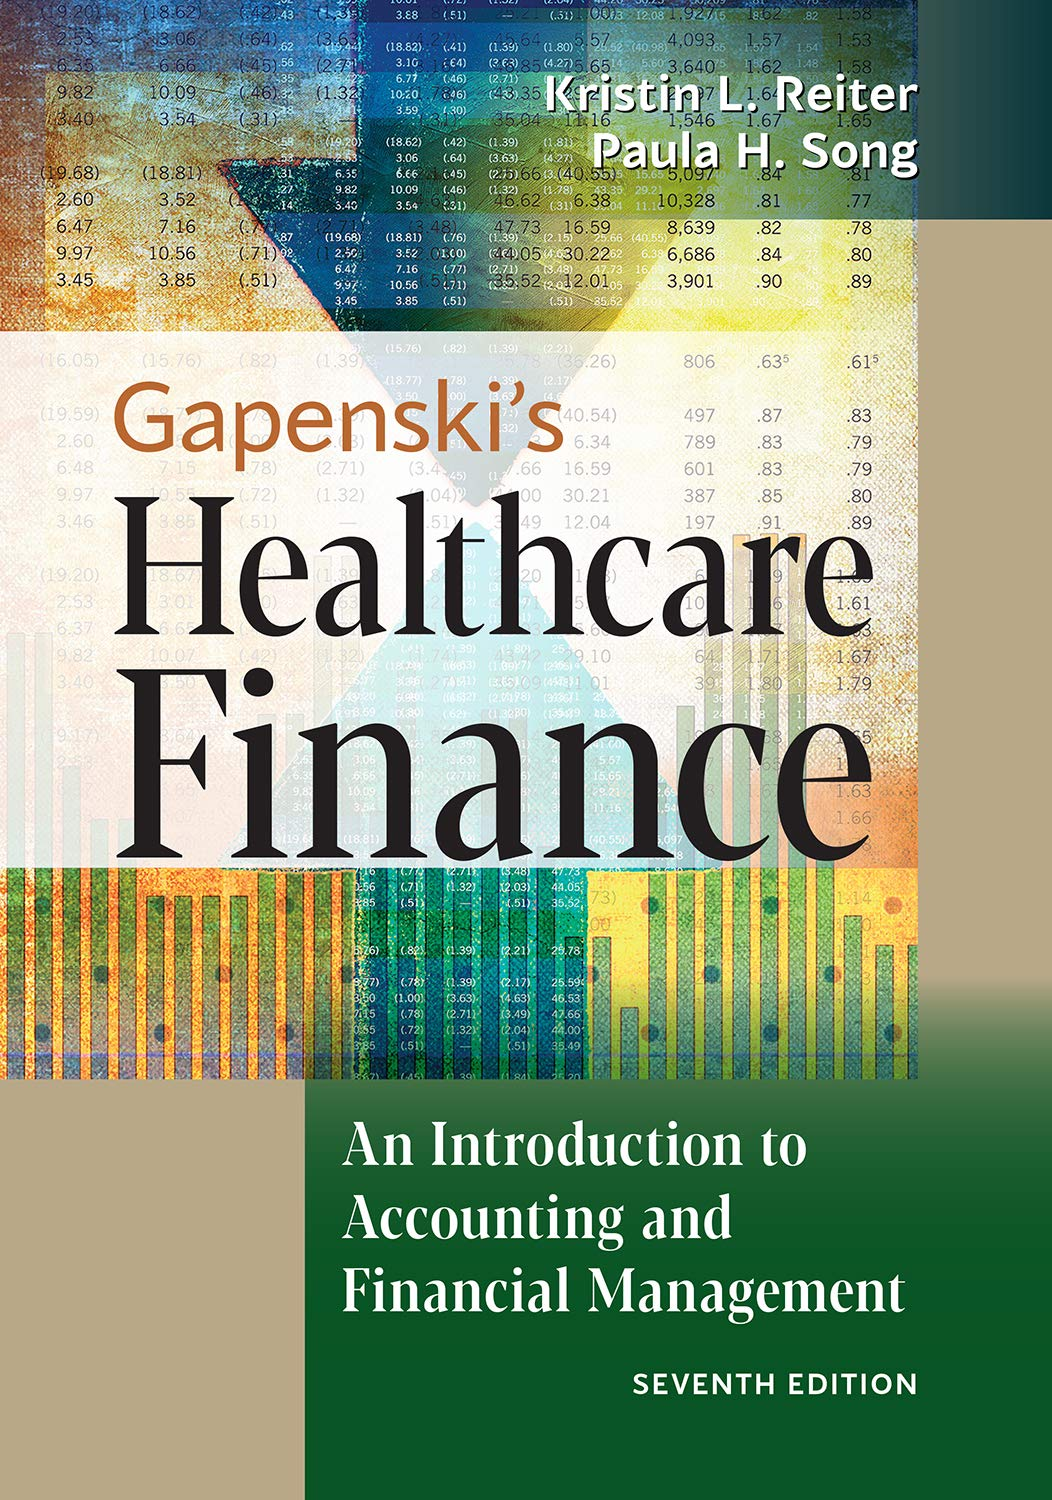 Amazon Com Gapenski S Healthcare Finance An Introduction To Accounting And Financial Management Seventh Edition Ebook Reiter Kristin L Song Paula H Kindle Store